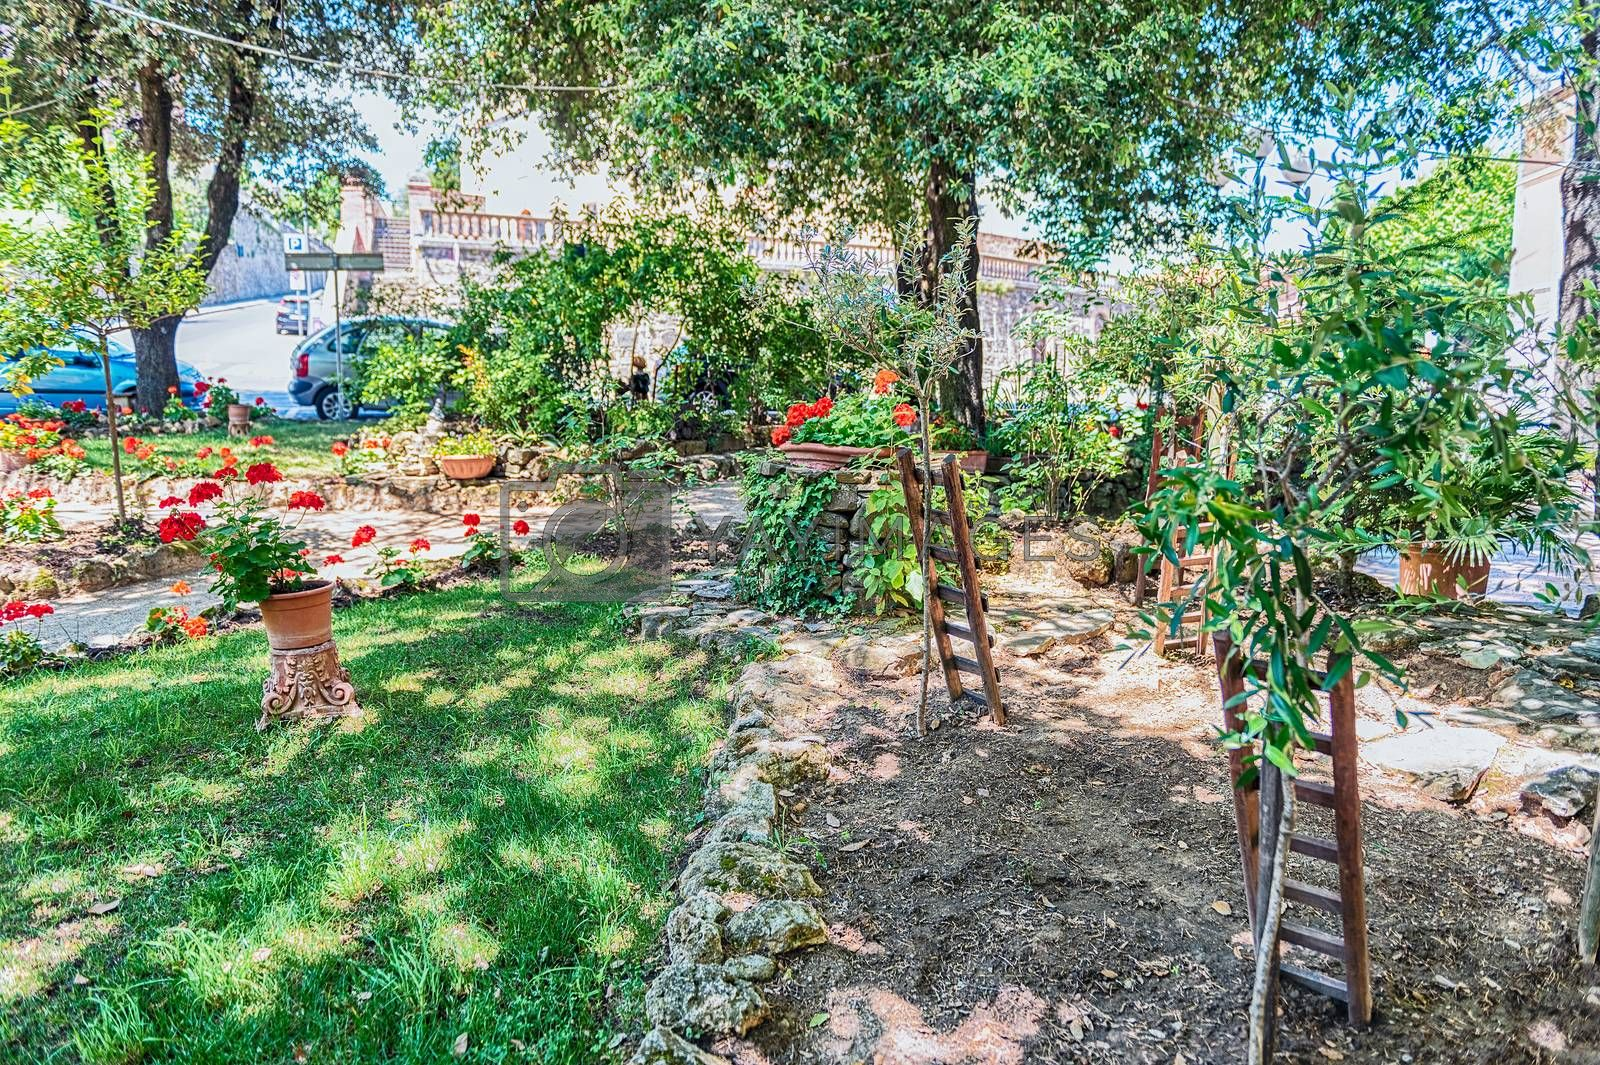 Beautiful garden in a public park of  the town of Montalcino, province of Siena, Tuscany, Italy